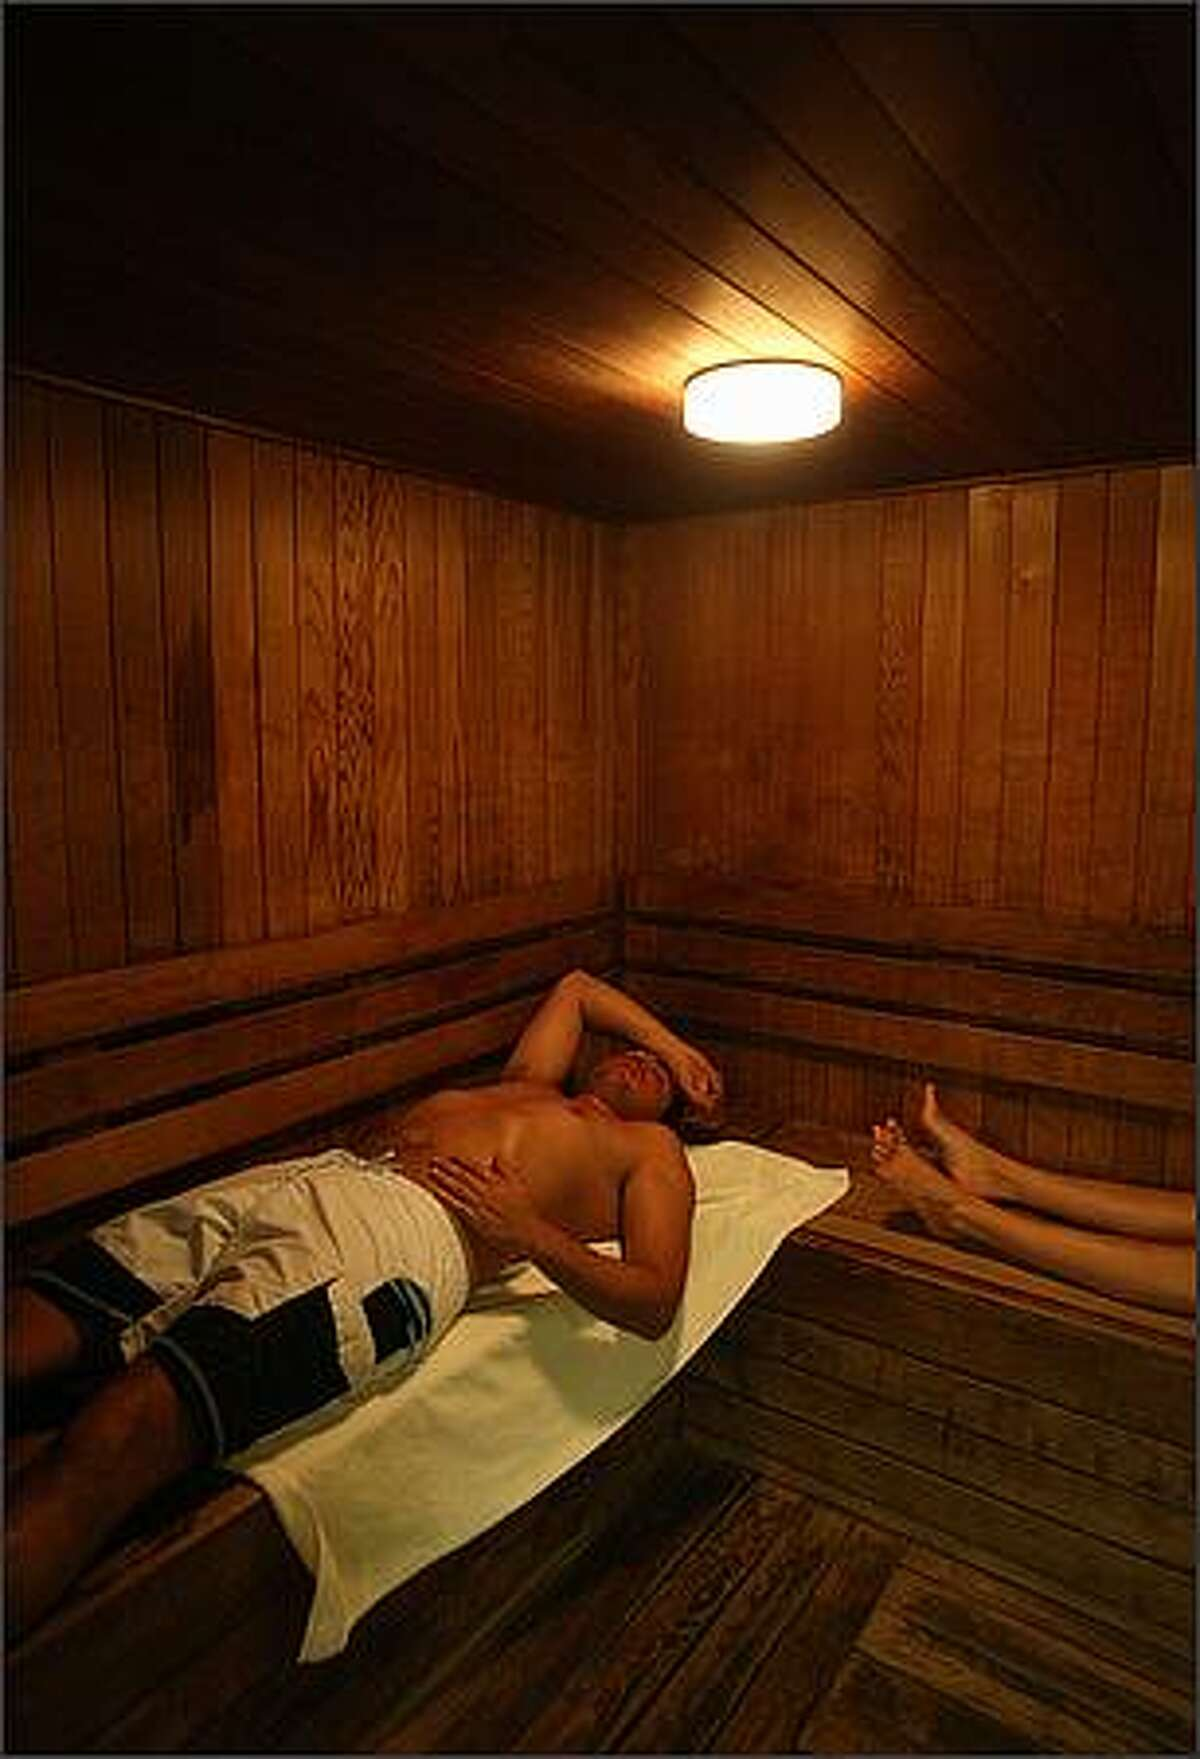 Braulio Santos lies in the sauna with his wife, Paulina, both from Mexico City, while on their honeymoon at the Fairmont Chateau in Whistler, British Columbia. Dec. 11, 2008